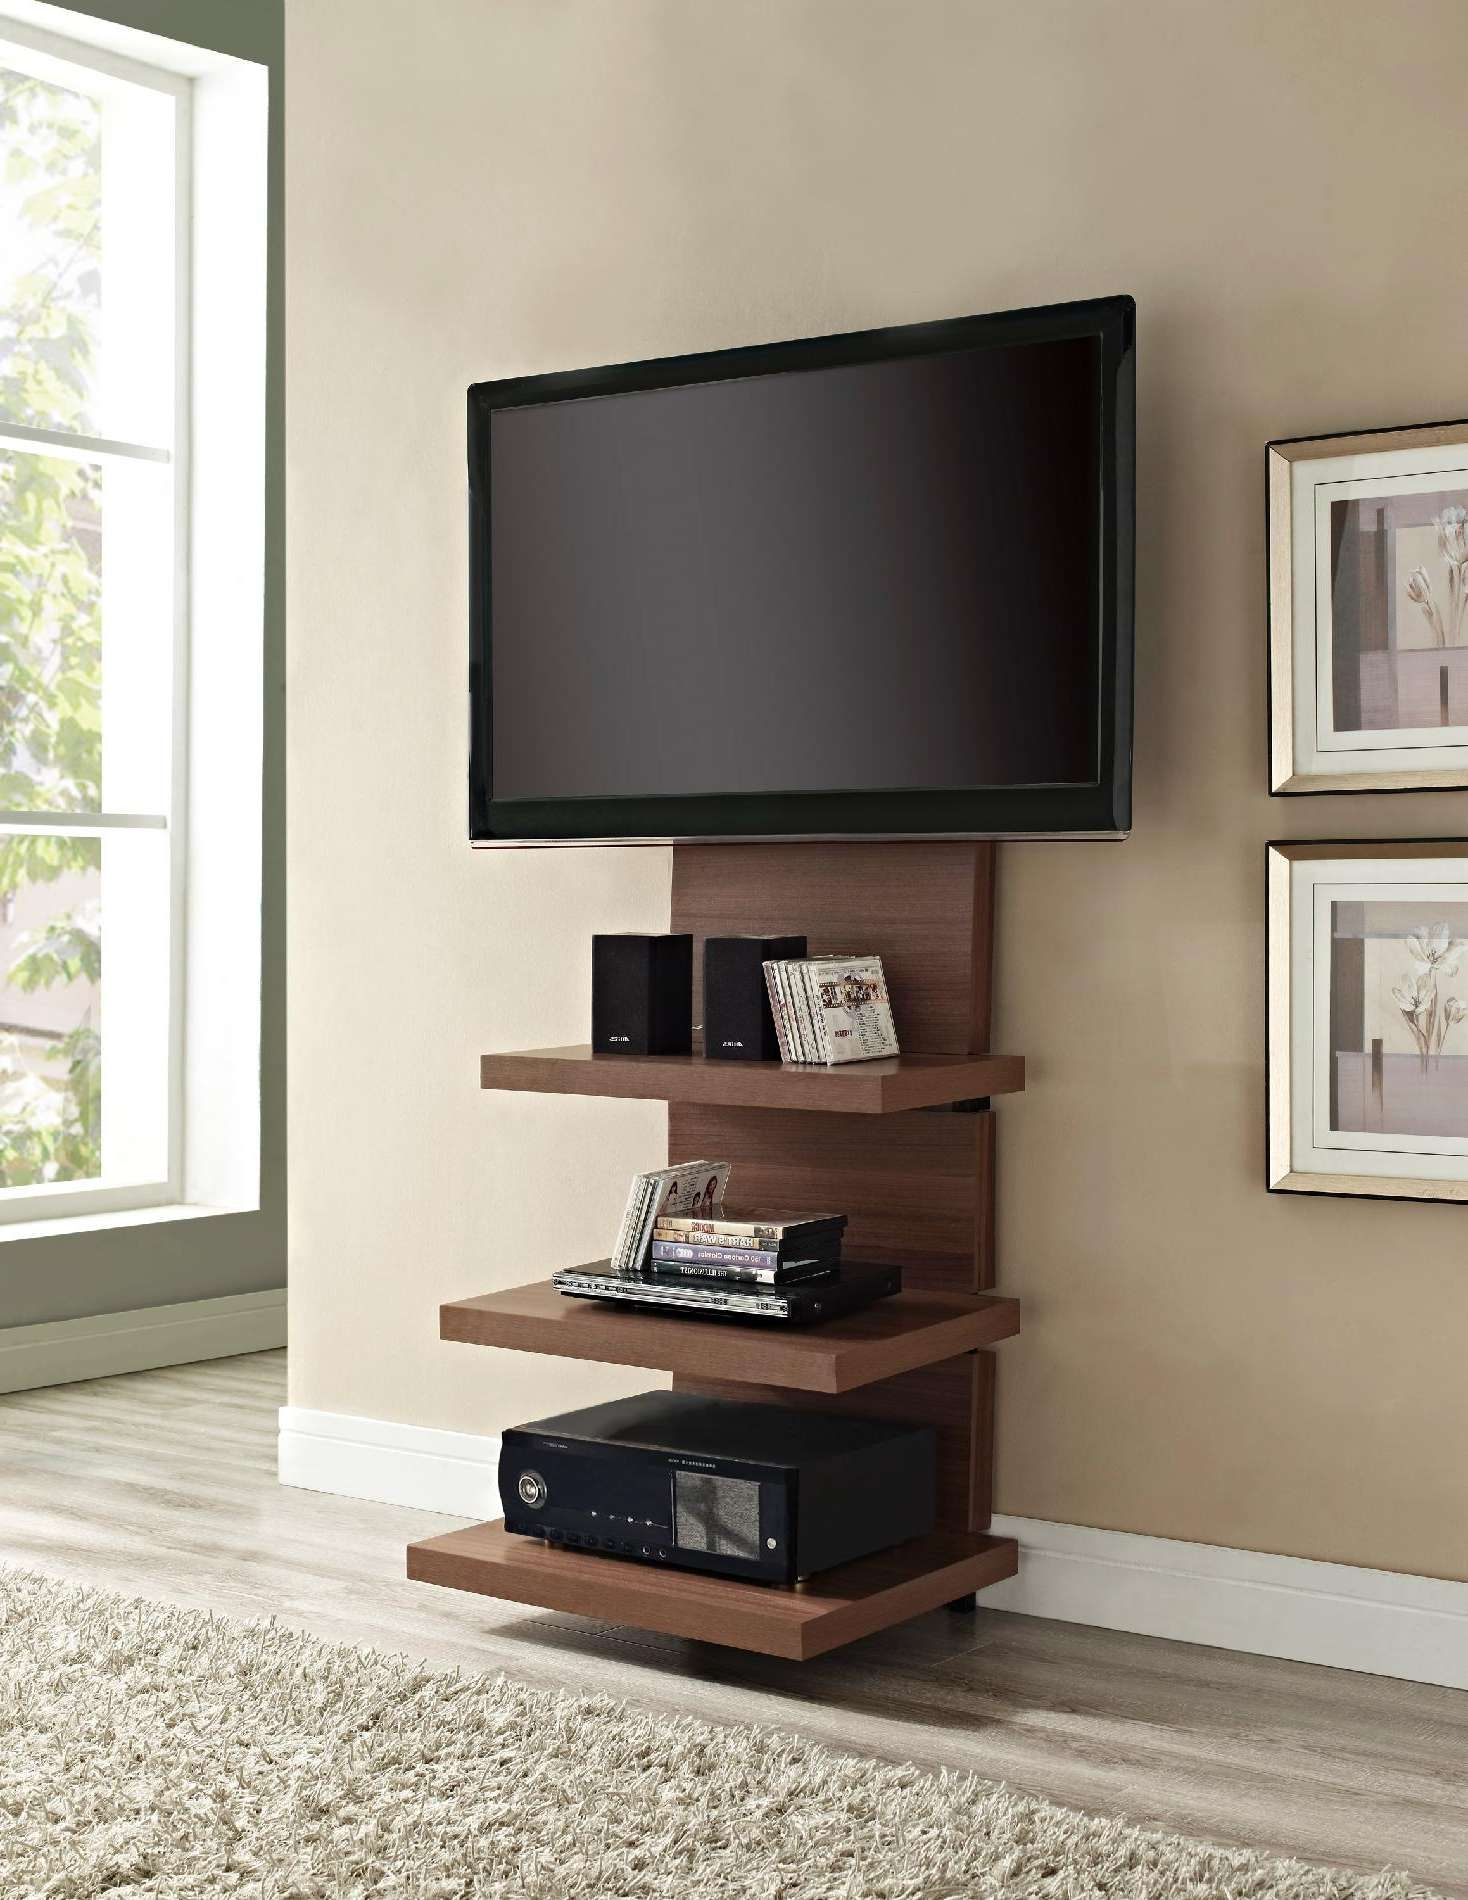 Home Decor: Perfect Tv Stands With Flat Panel Mounts To Complete Pertaining To Modern Wall Mount Tv Stands (View 12 of 15)